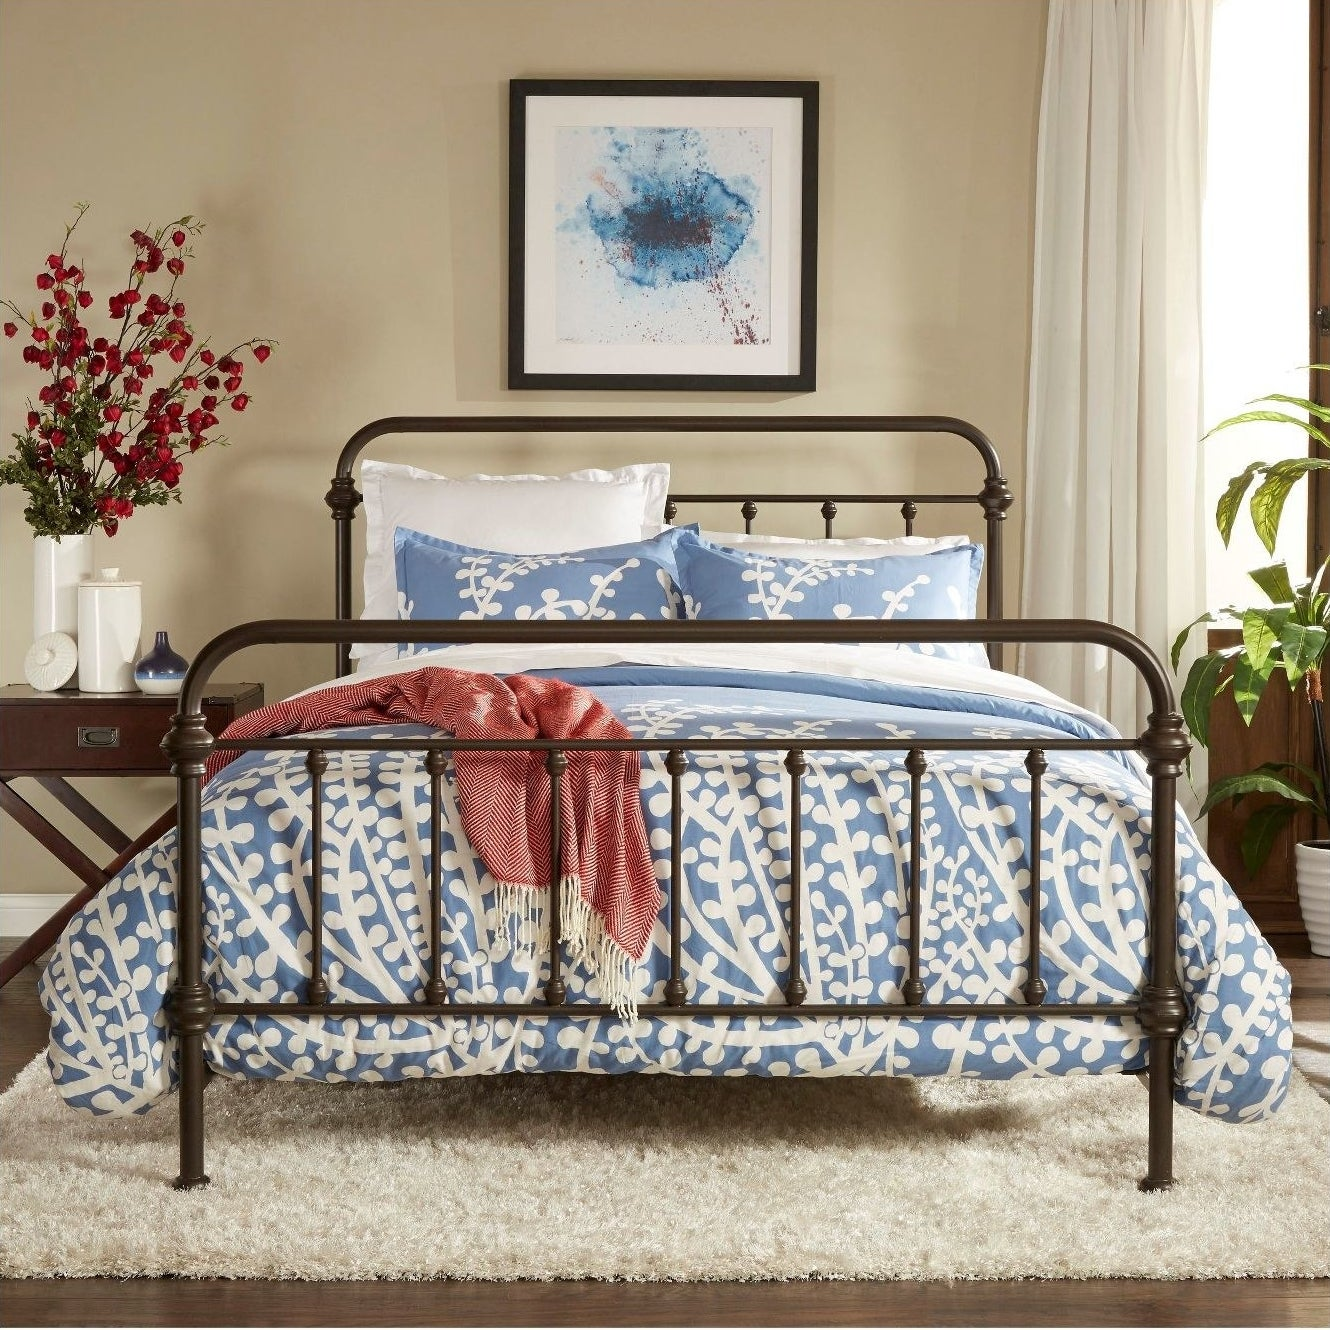 metal bed with blue comforter on it in the middle of a bedroom